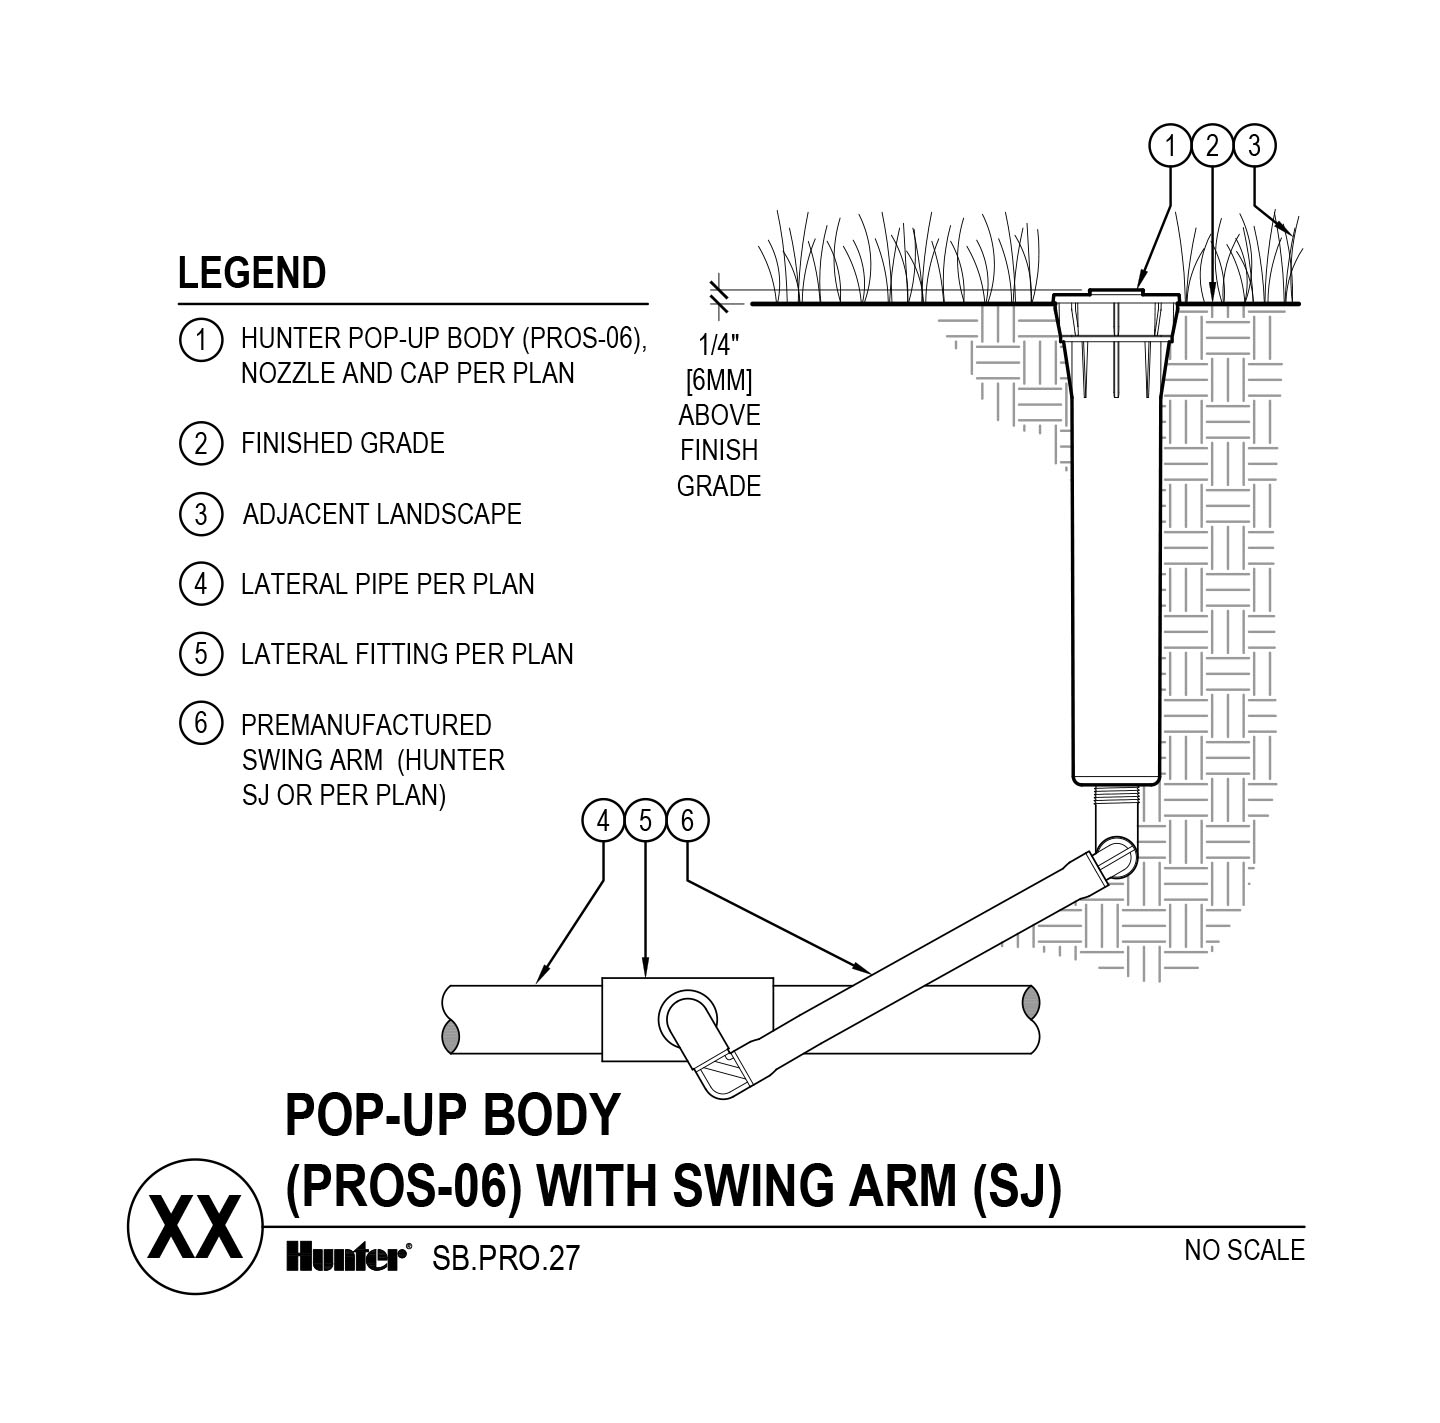 pros-06_with_sj_swing_arm.jpg